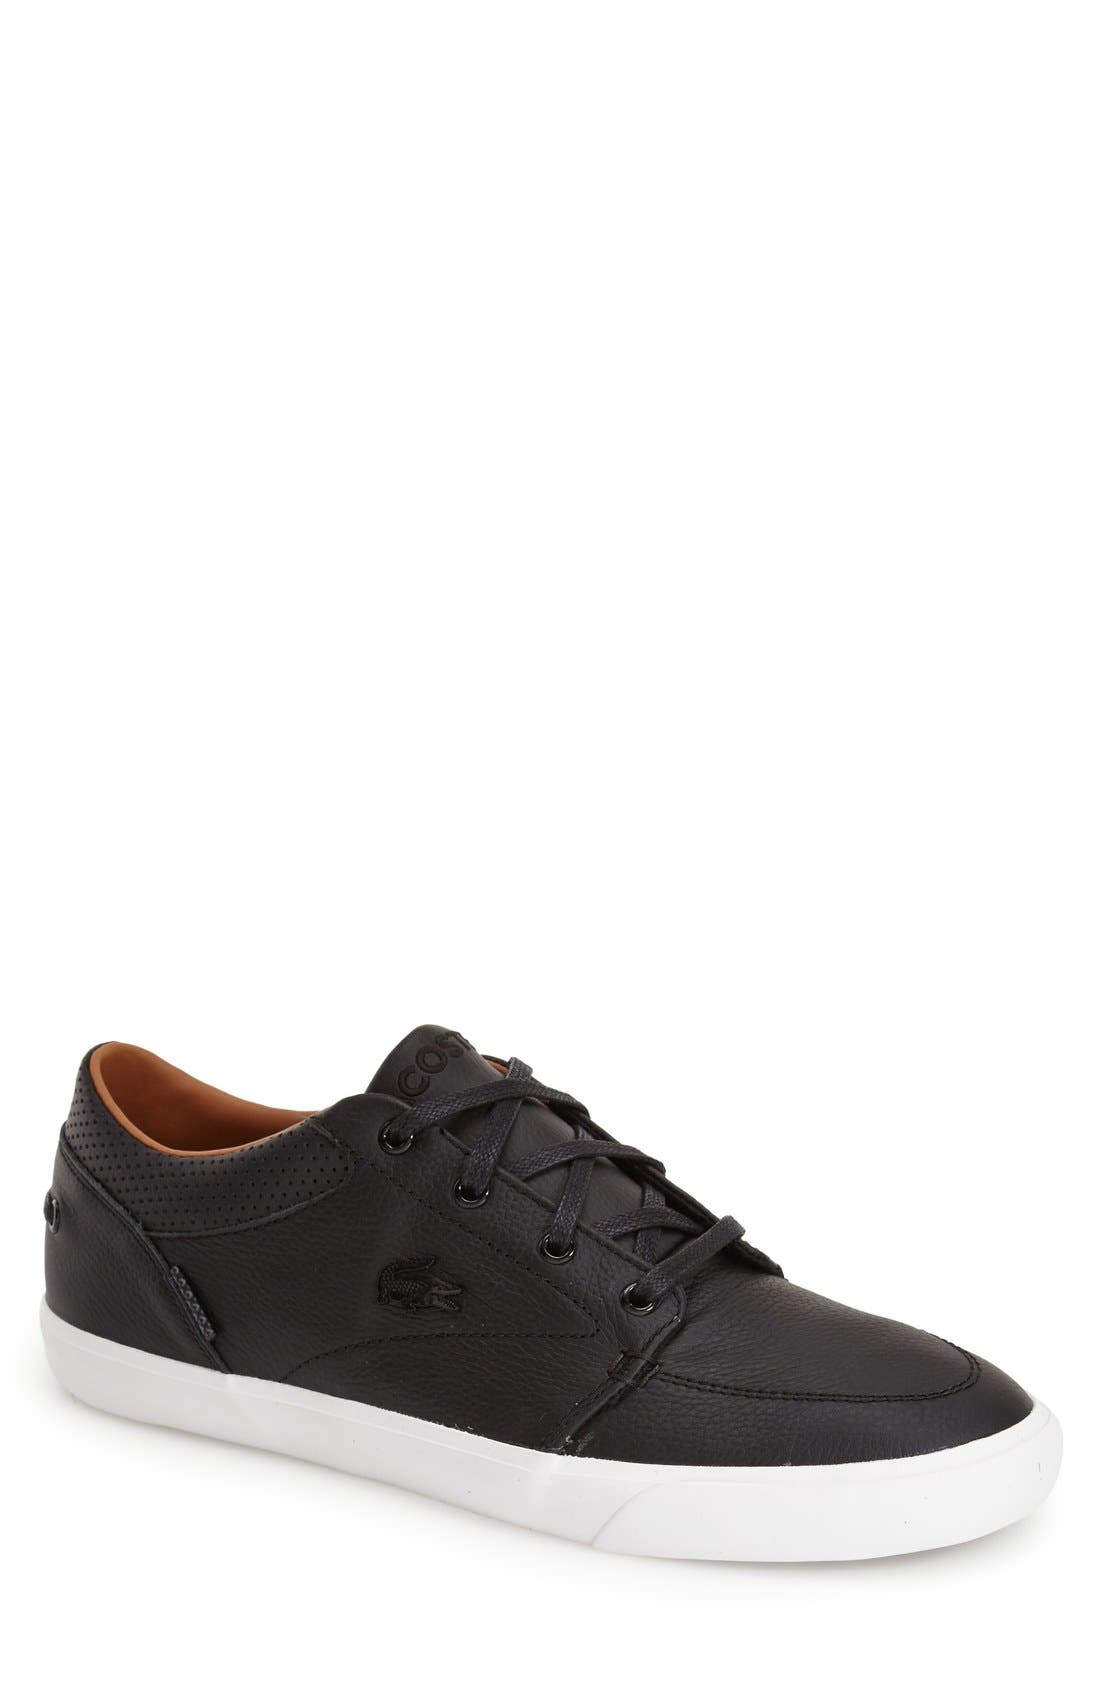 LACOSTE 'Bayliss' Sneaker, Main, color, 009